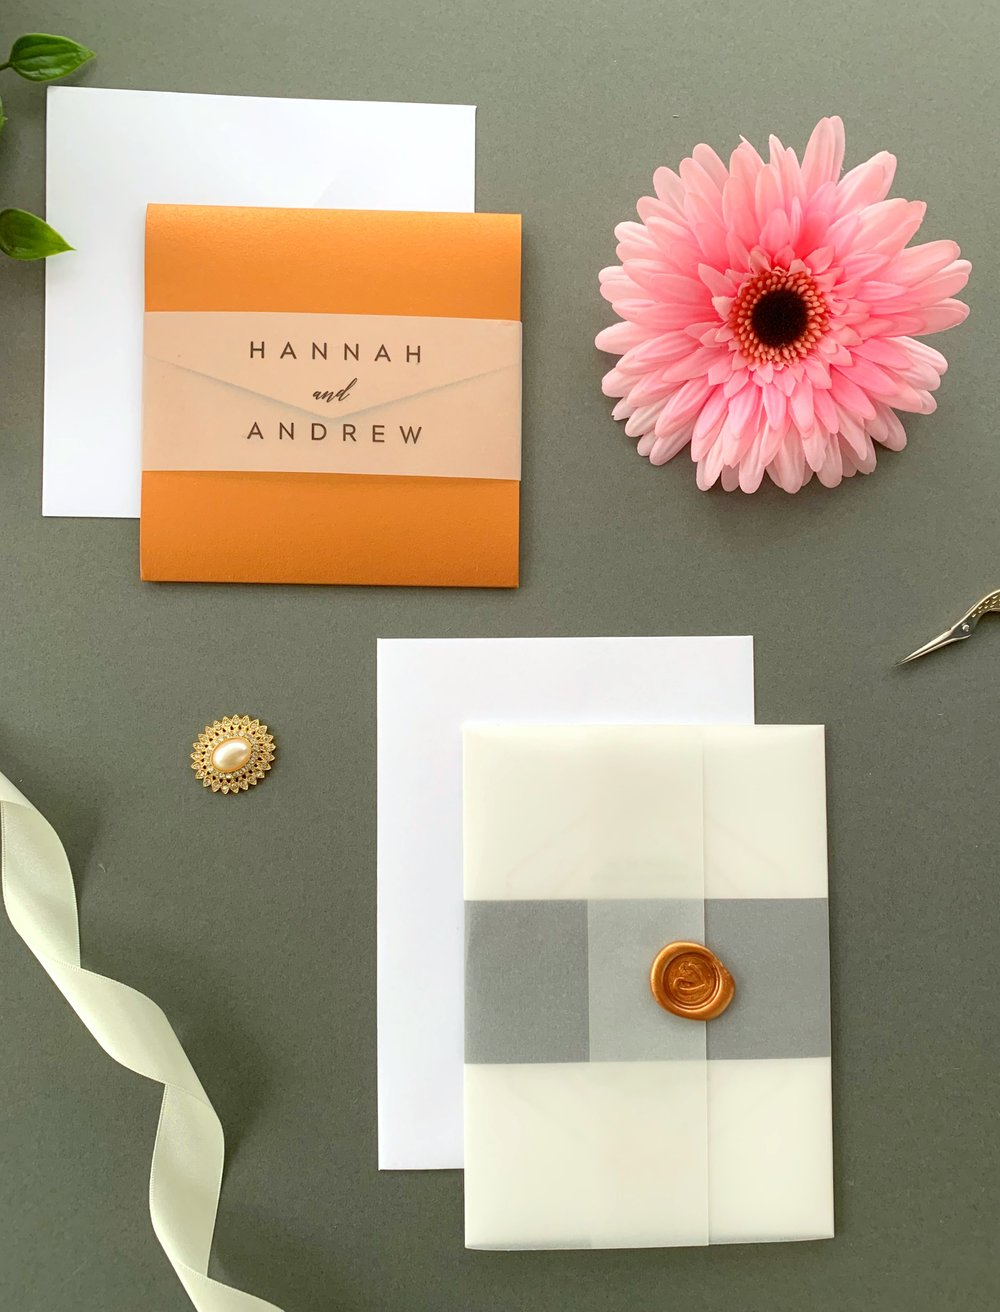 Mayfair Pocketfold Suite with Vellum Belly Band, Invitation Suite with Paper Belly Band, Vellum Jacket and Copper Wax Seal